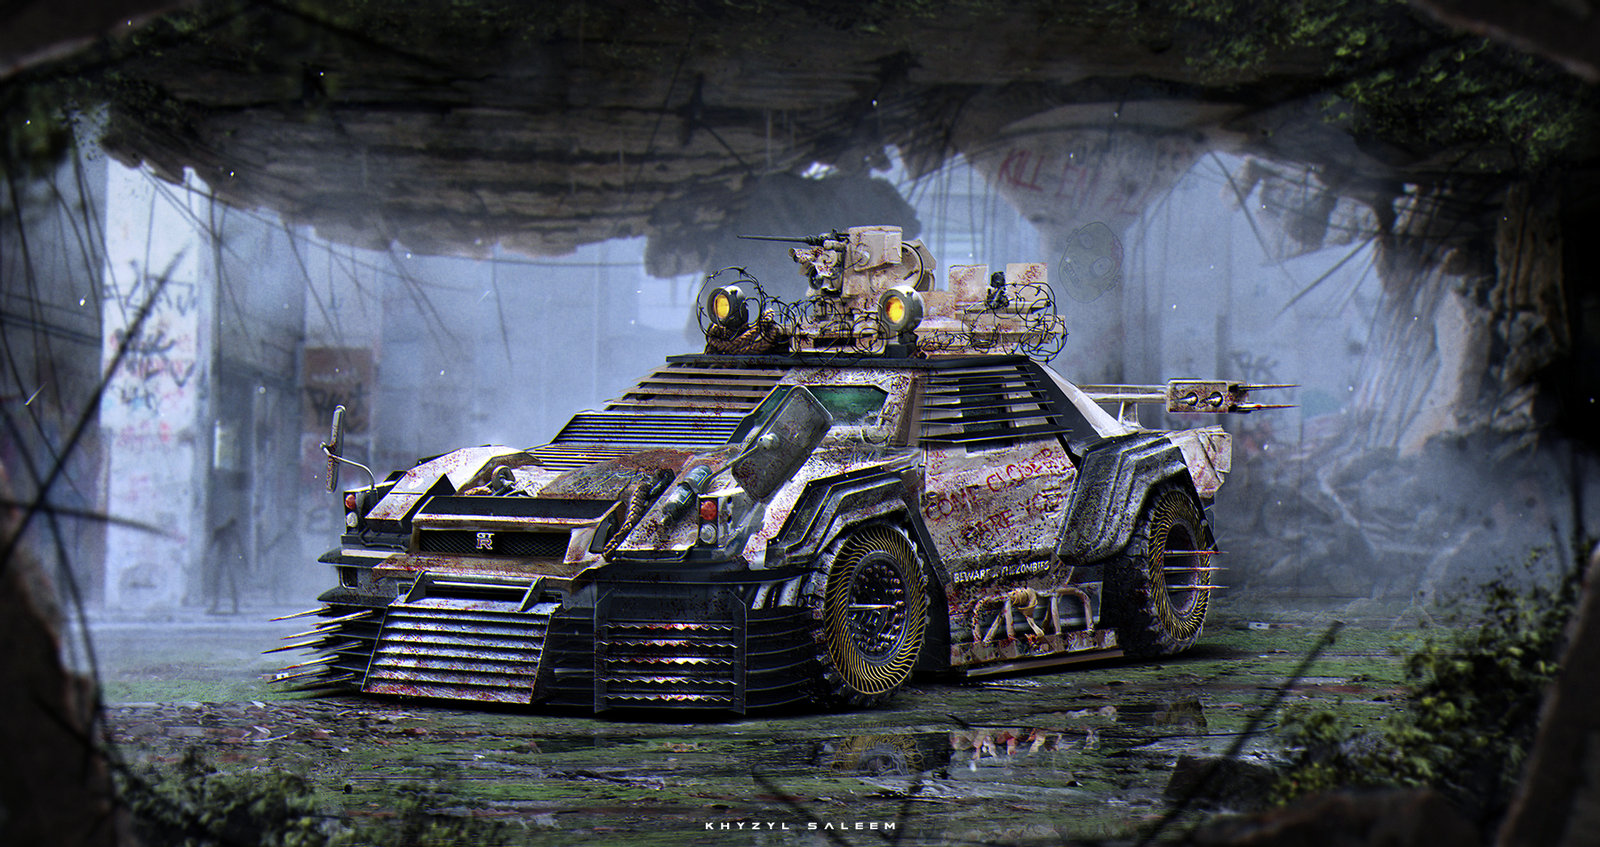 Nissan R34 | Zombie Apocalypse Vehicle